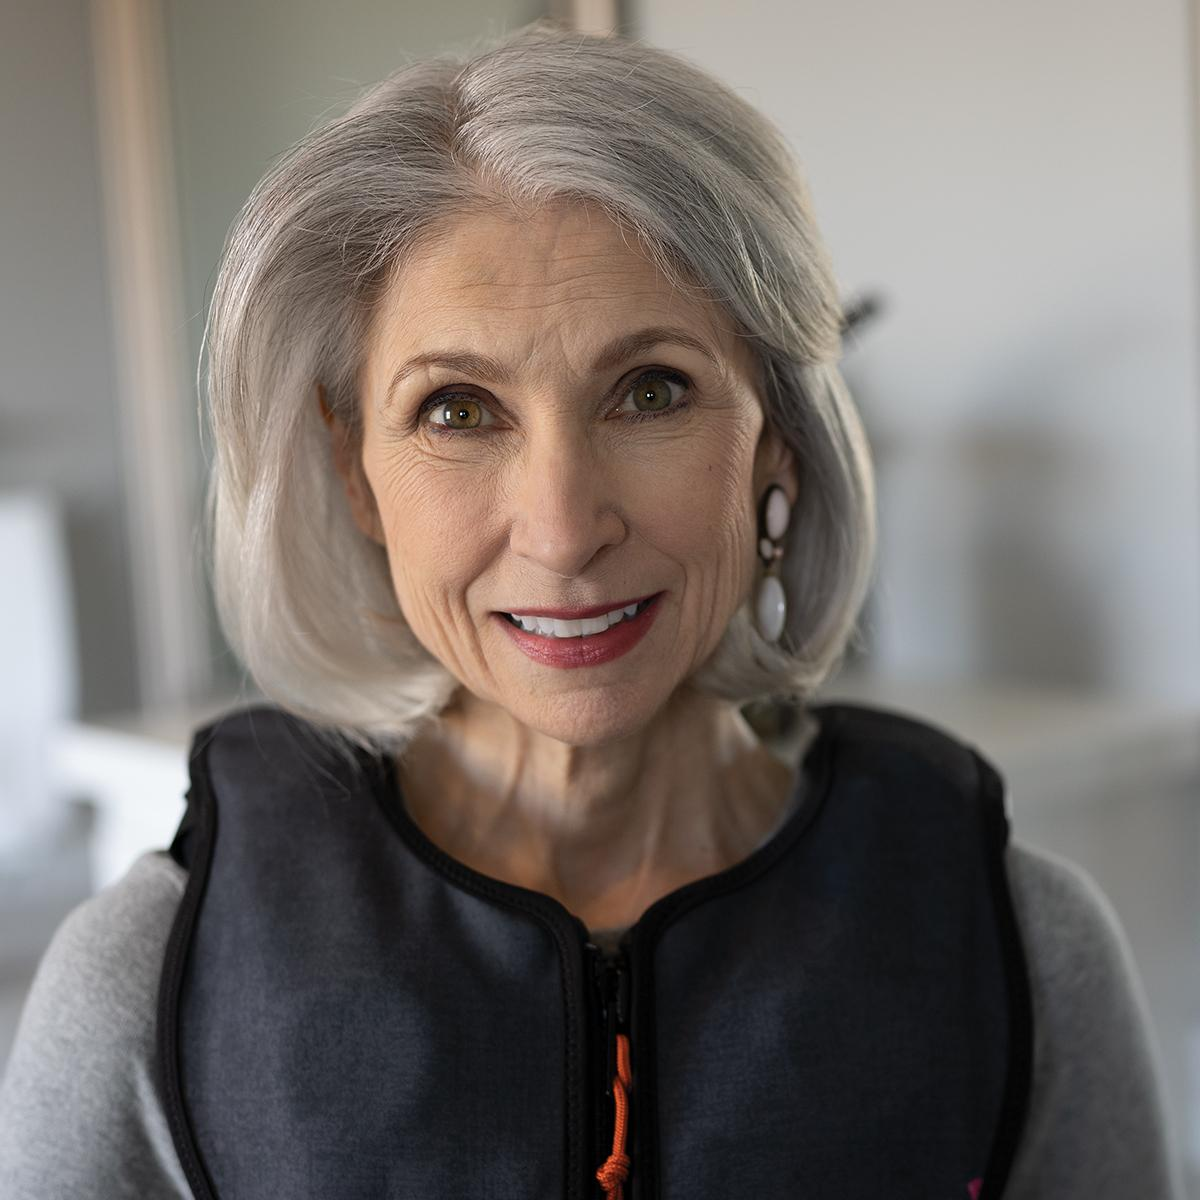 A woman with gray hair wears a fashionable, black Monarch® System vest with orange accents.